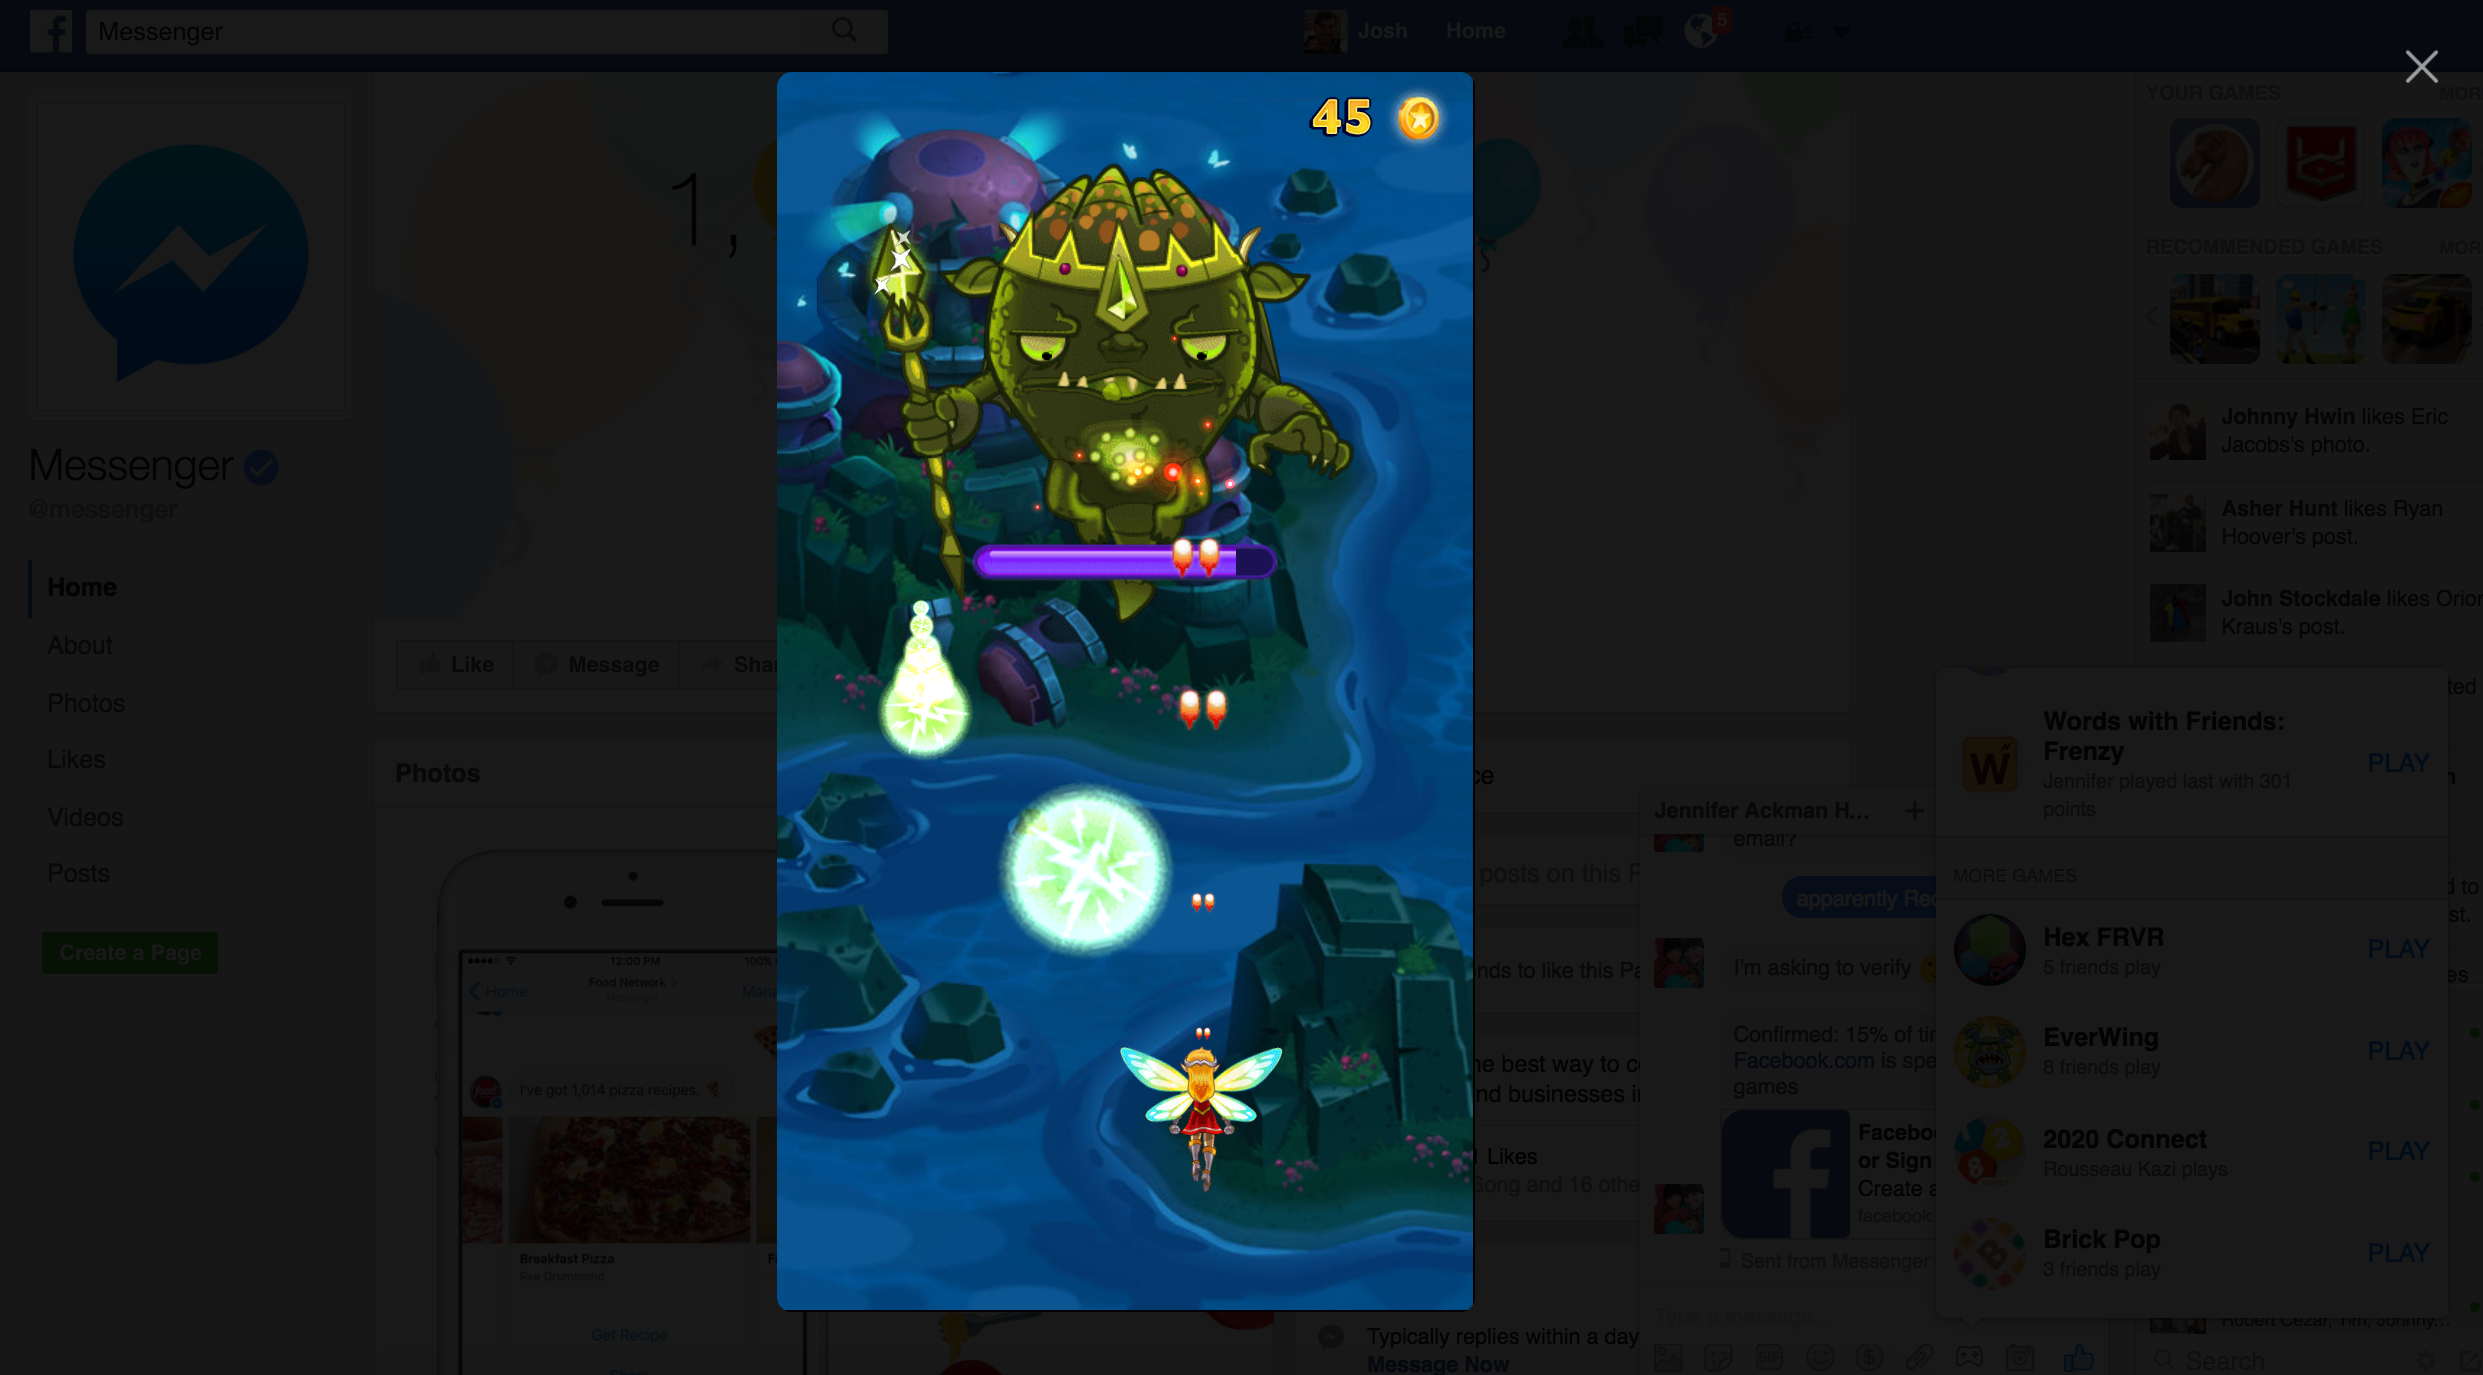 You can now challenge your friends to a game over Facebook